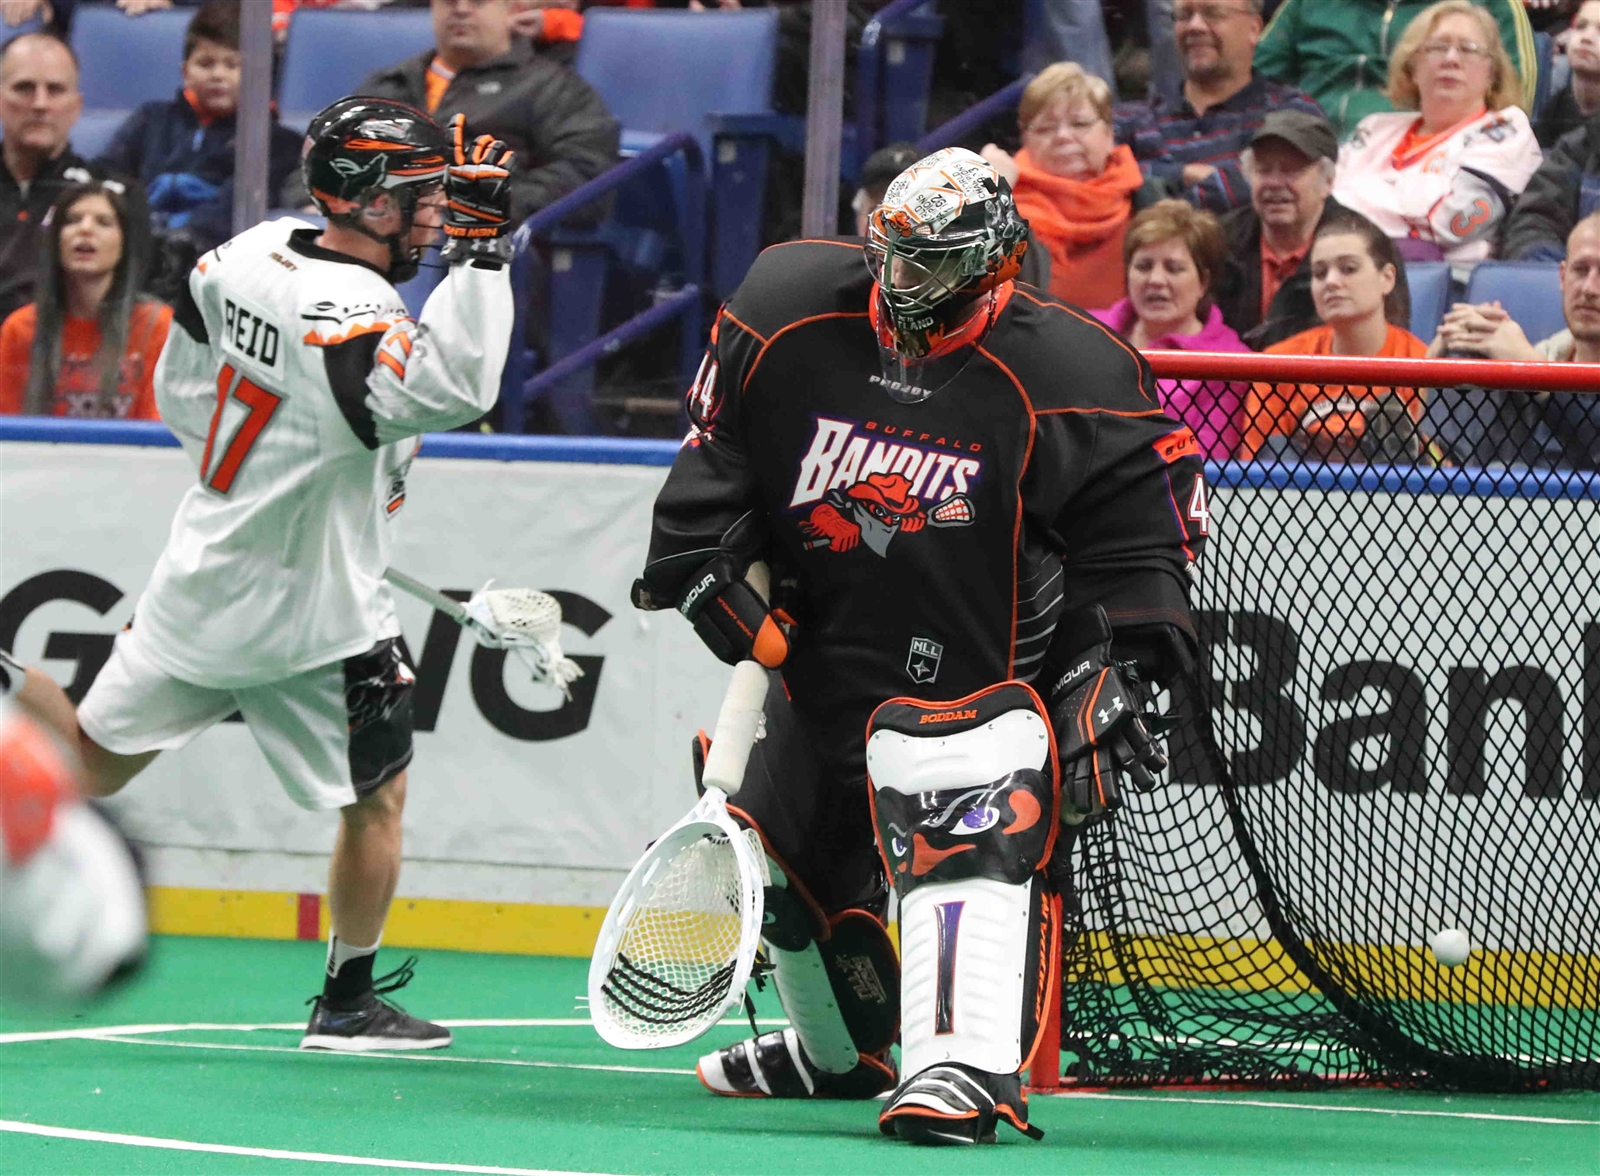 Buffalo Bandits' Davide DiRuscio gives up a goal to New England Black Wolves' Zac Reid in the first quarter.